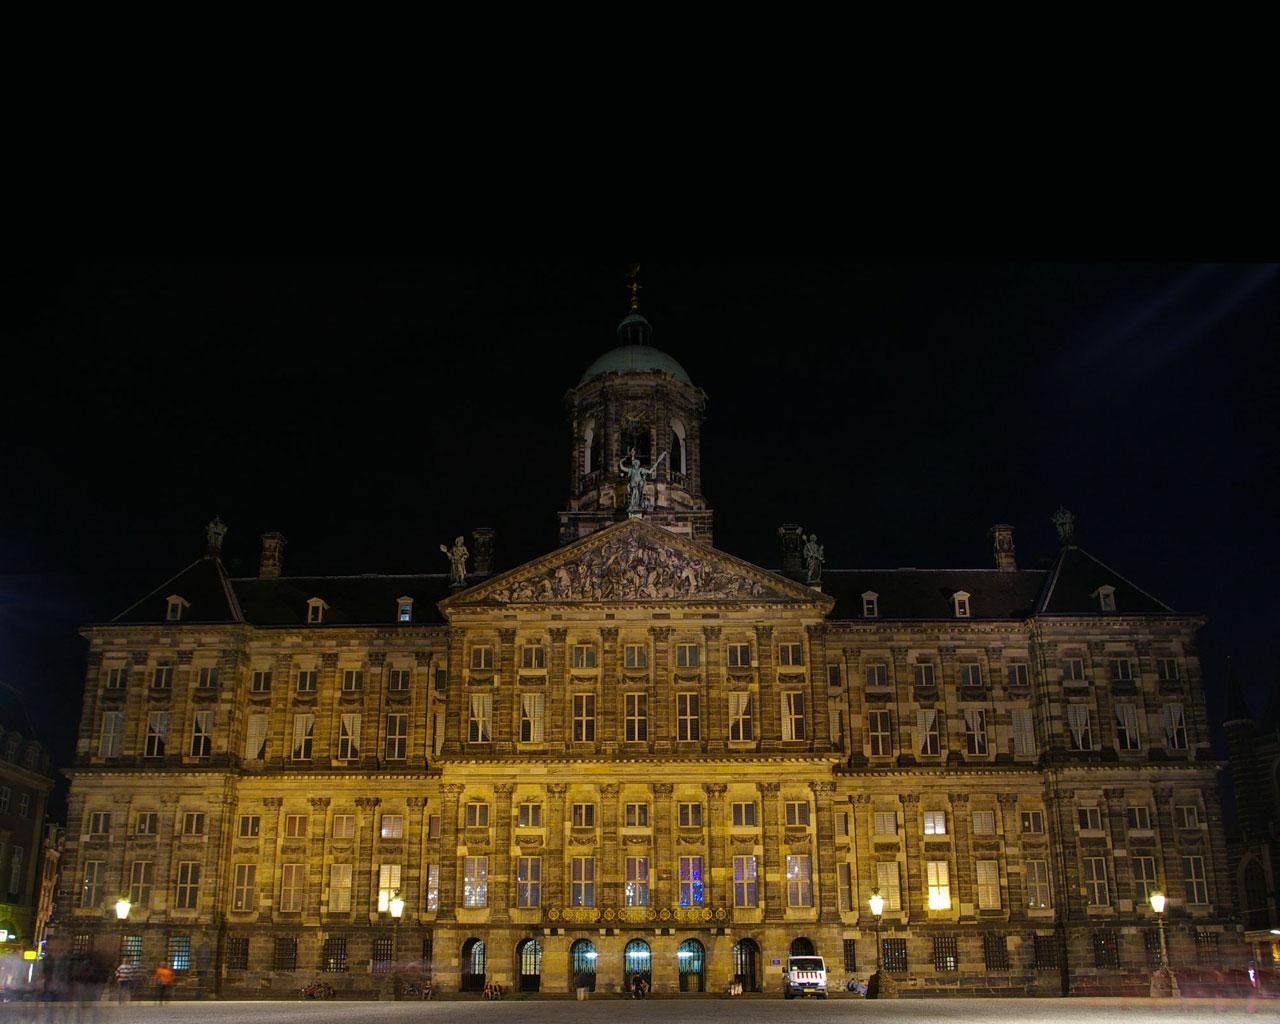 Amsterdam - Royal Palace Wallpaper #2 1280 x 1024